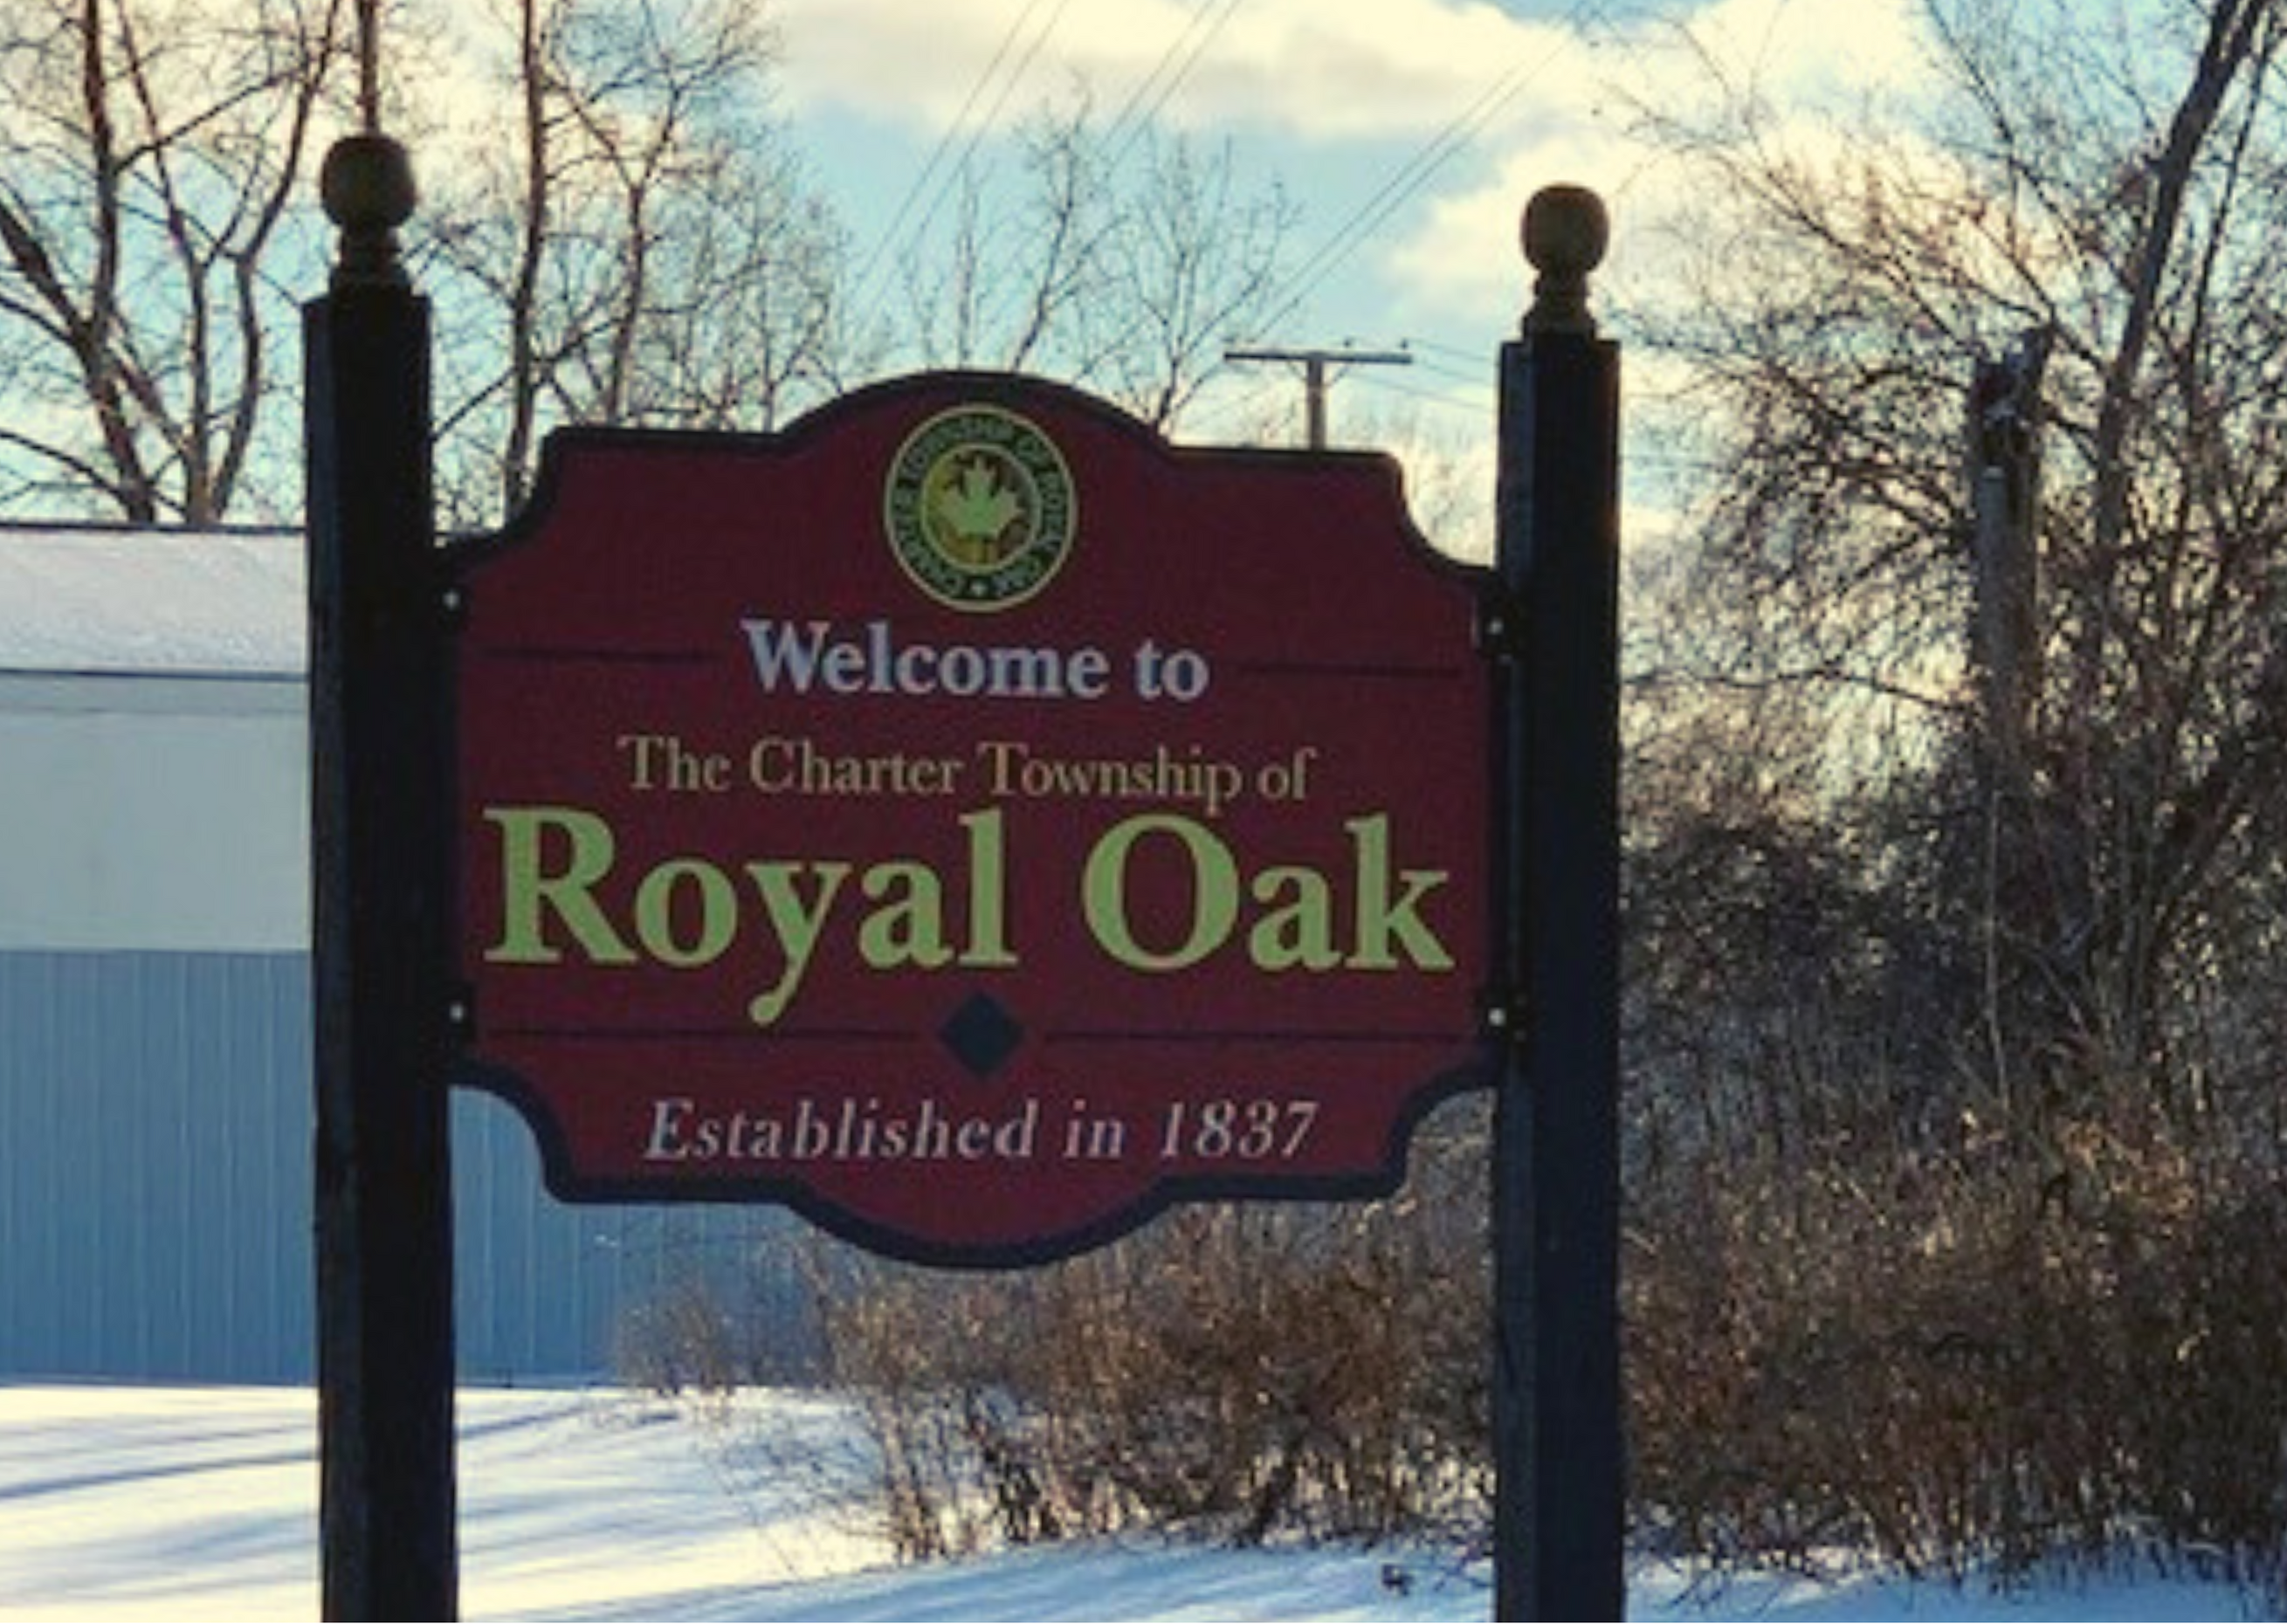 Royal Oak Township Entry